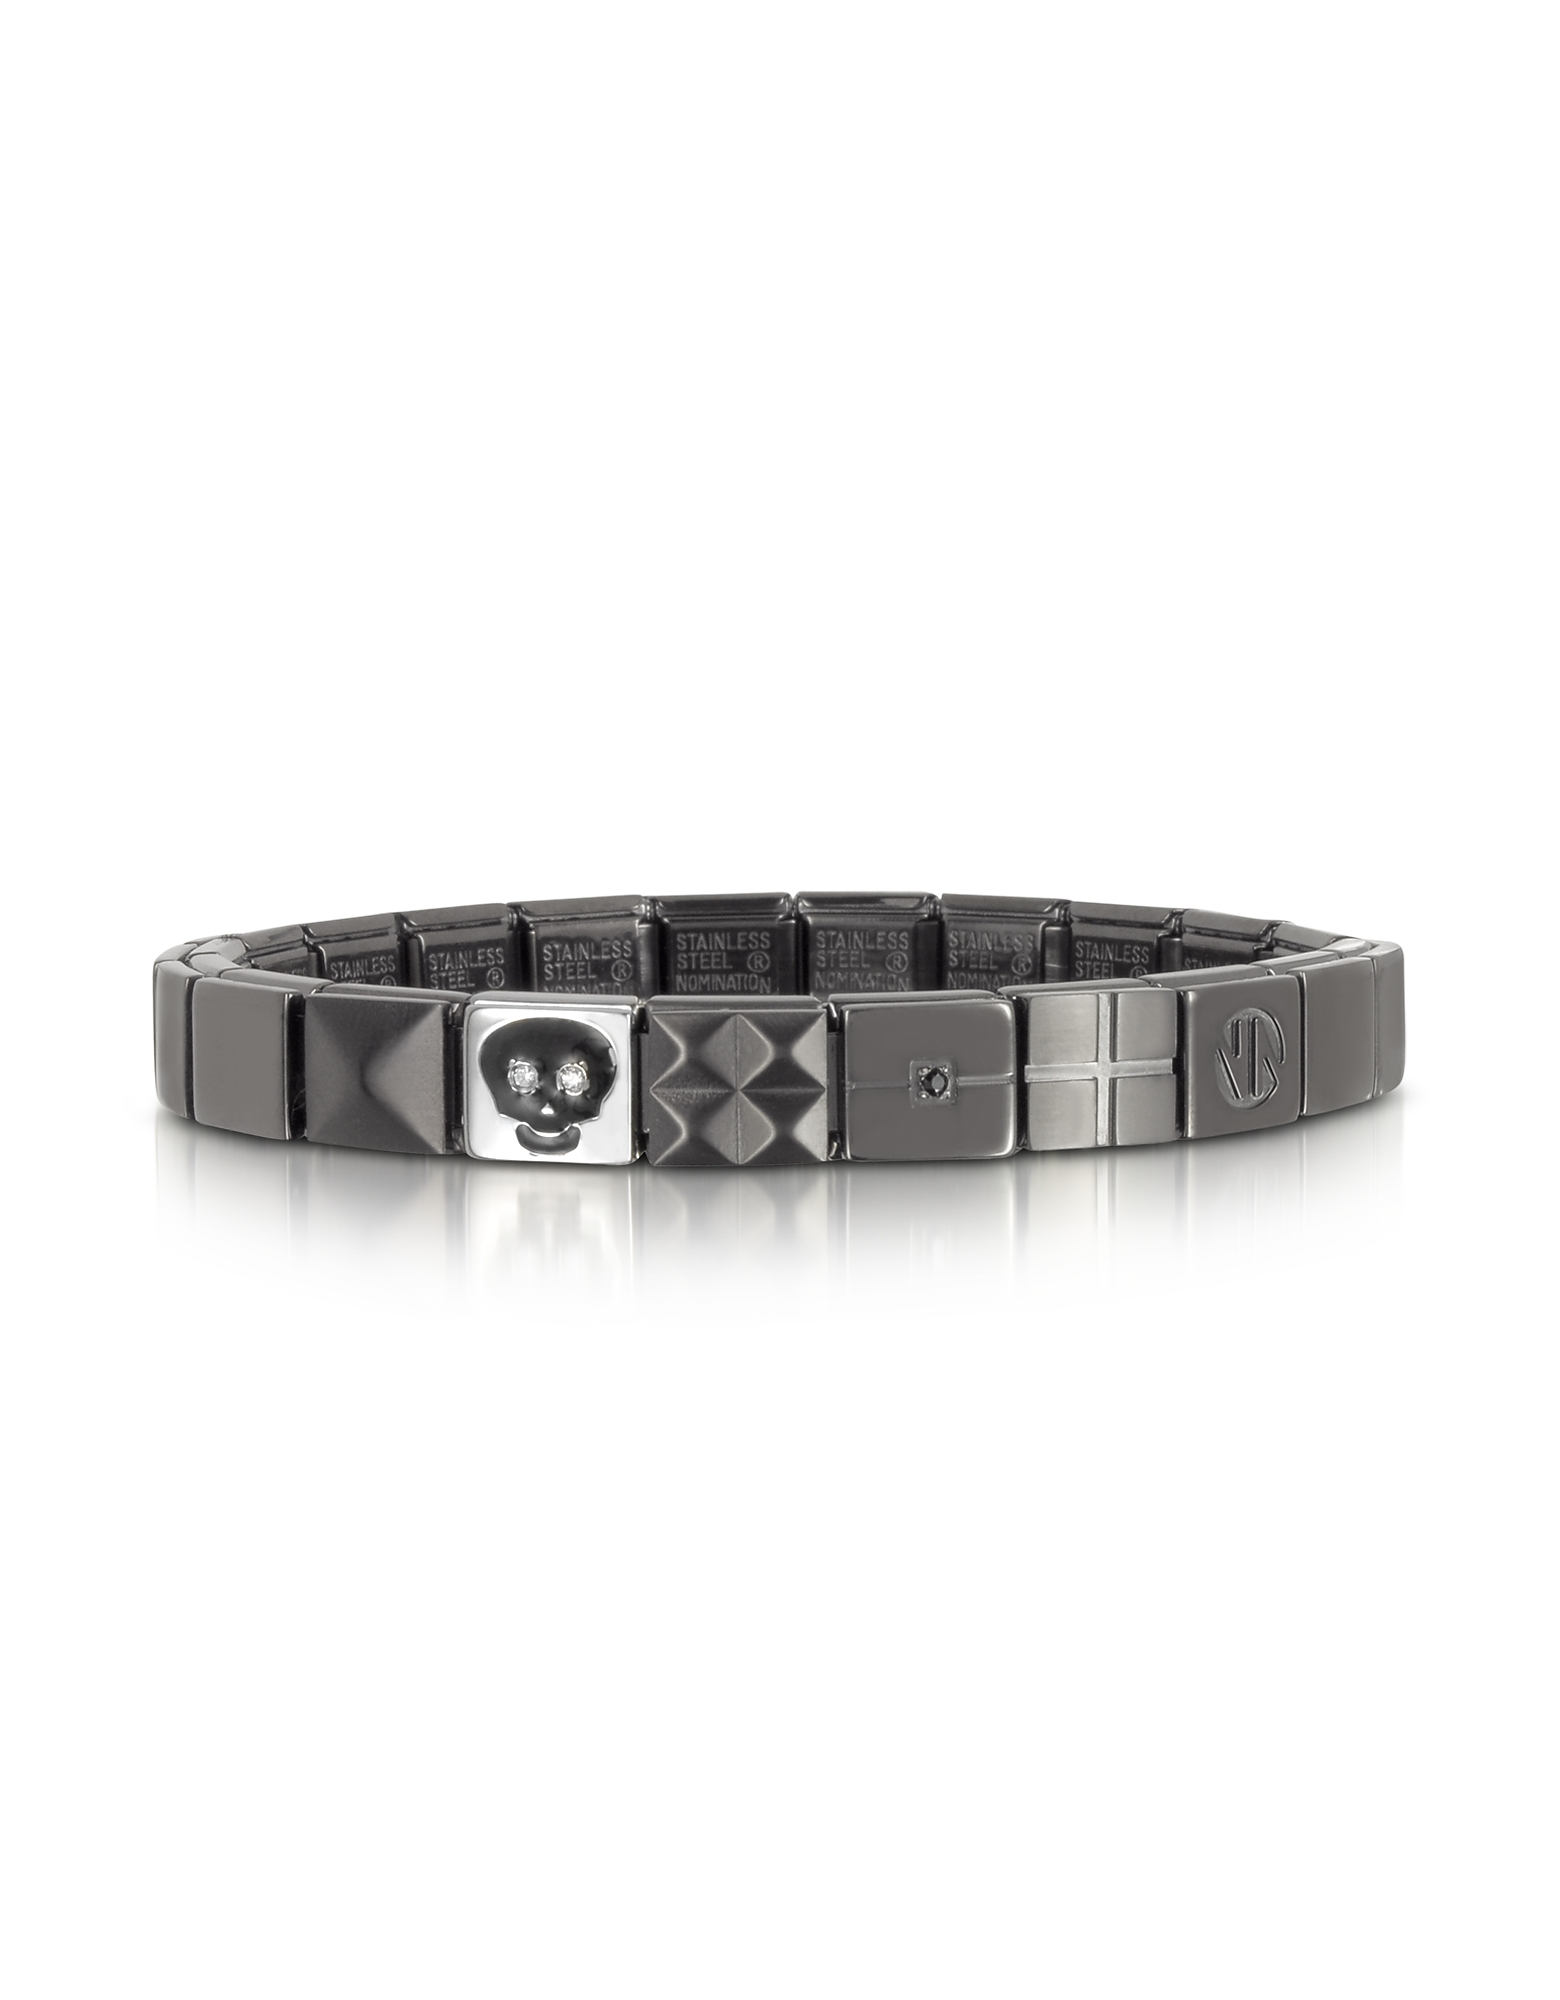 Steel Ikons Skull Brushed Stainless Steel Bracelet